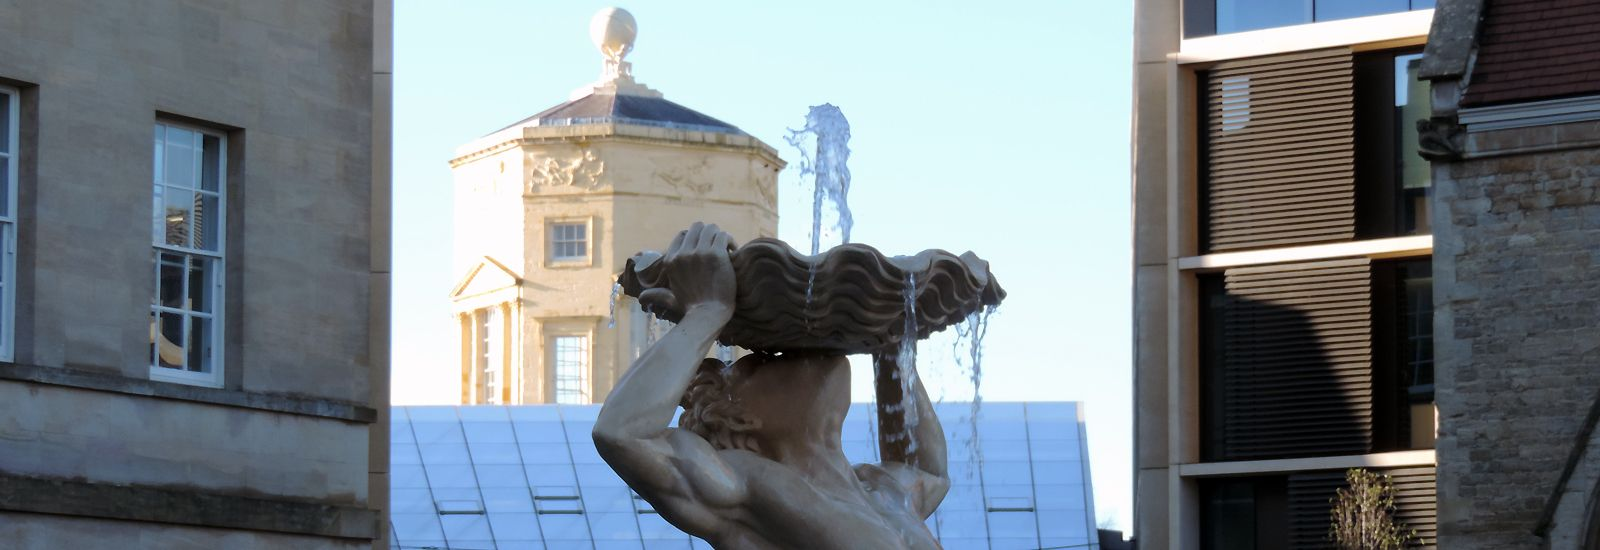 A water fountain with the Radcliffe Observatory Tower behind